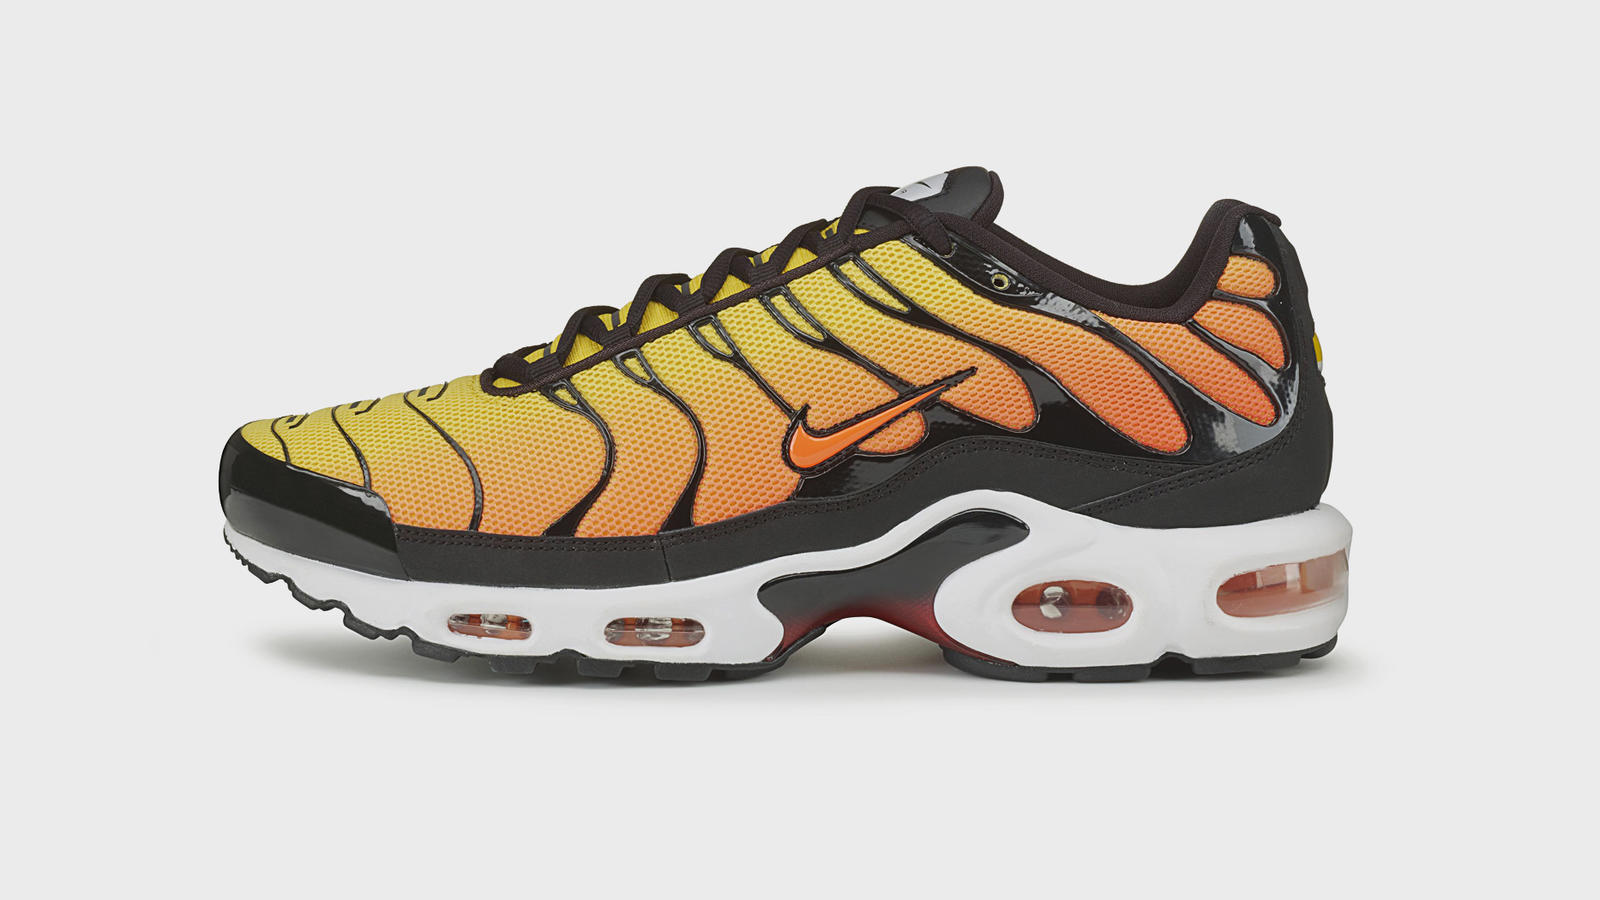 detailed look 225d6 56441 The Untold Story of the Nike Air Max Plus 23